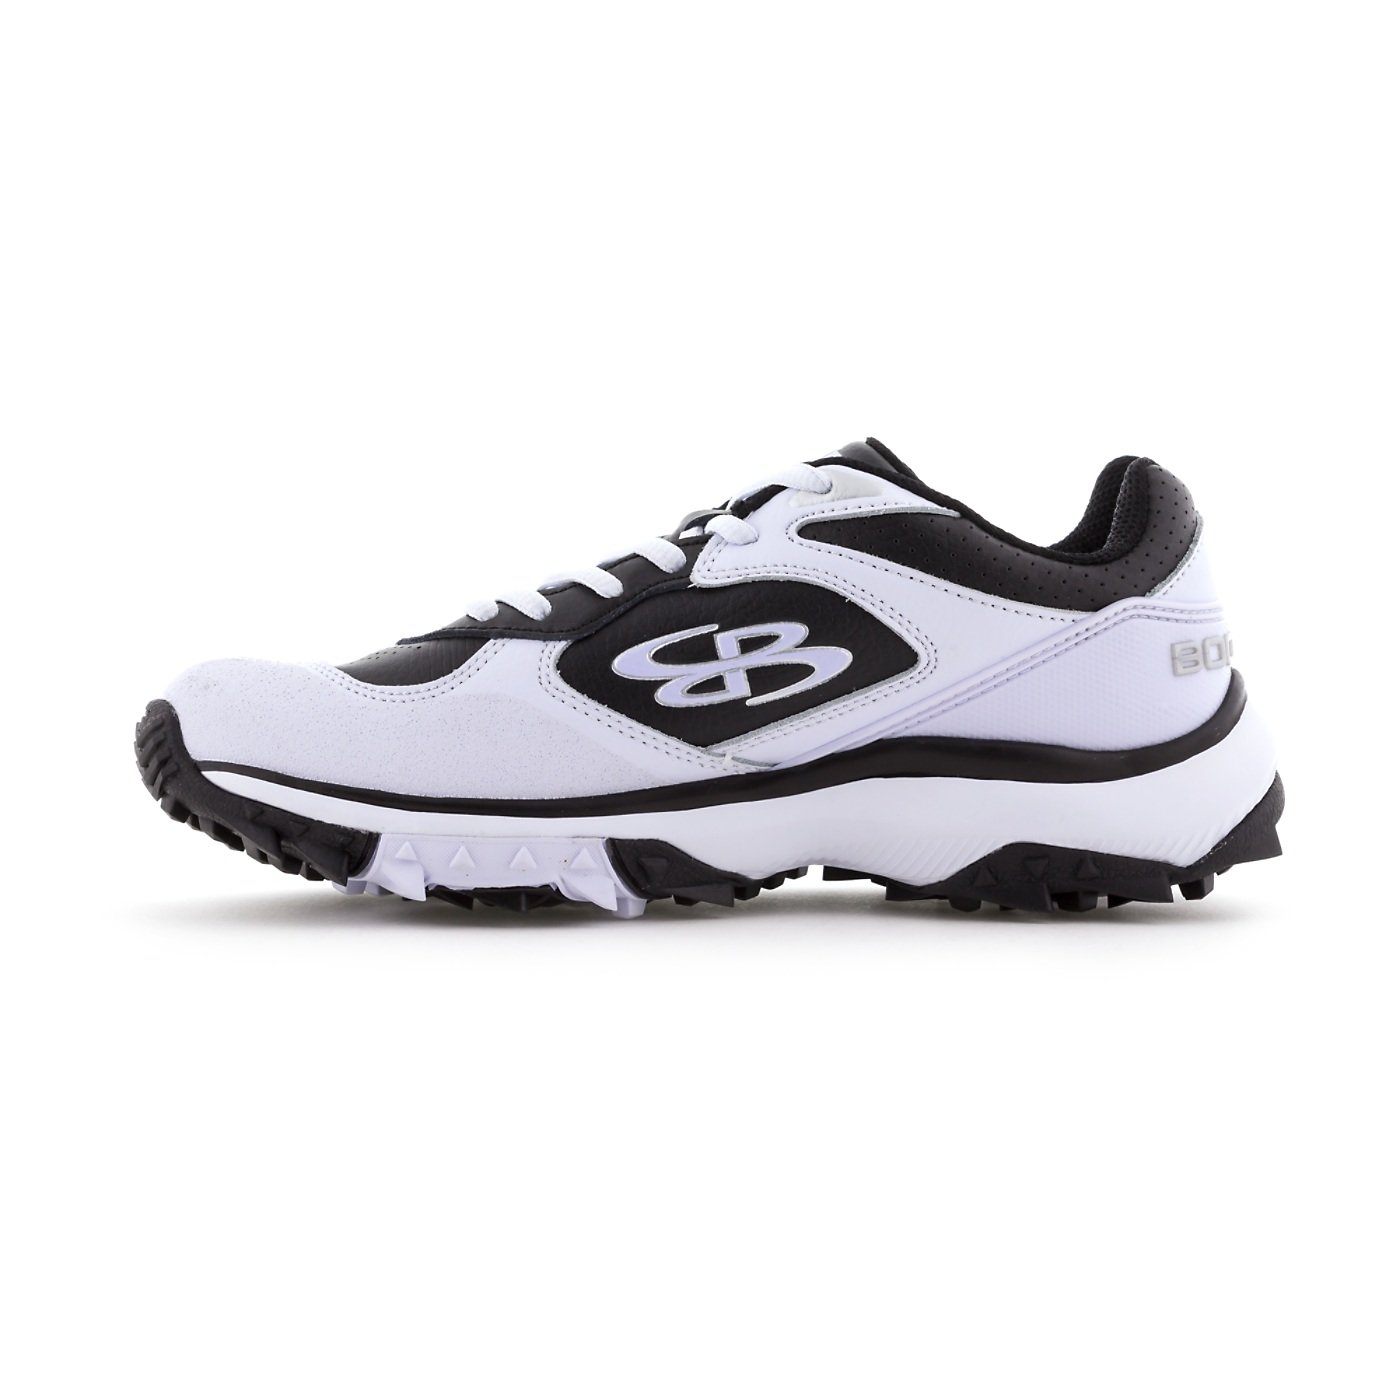 Boombah Women's Endura Turf Black/White - Size 6 by Boombah (Image #3)